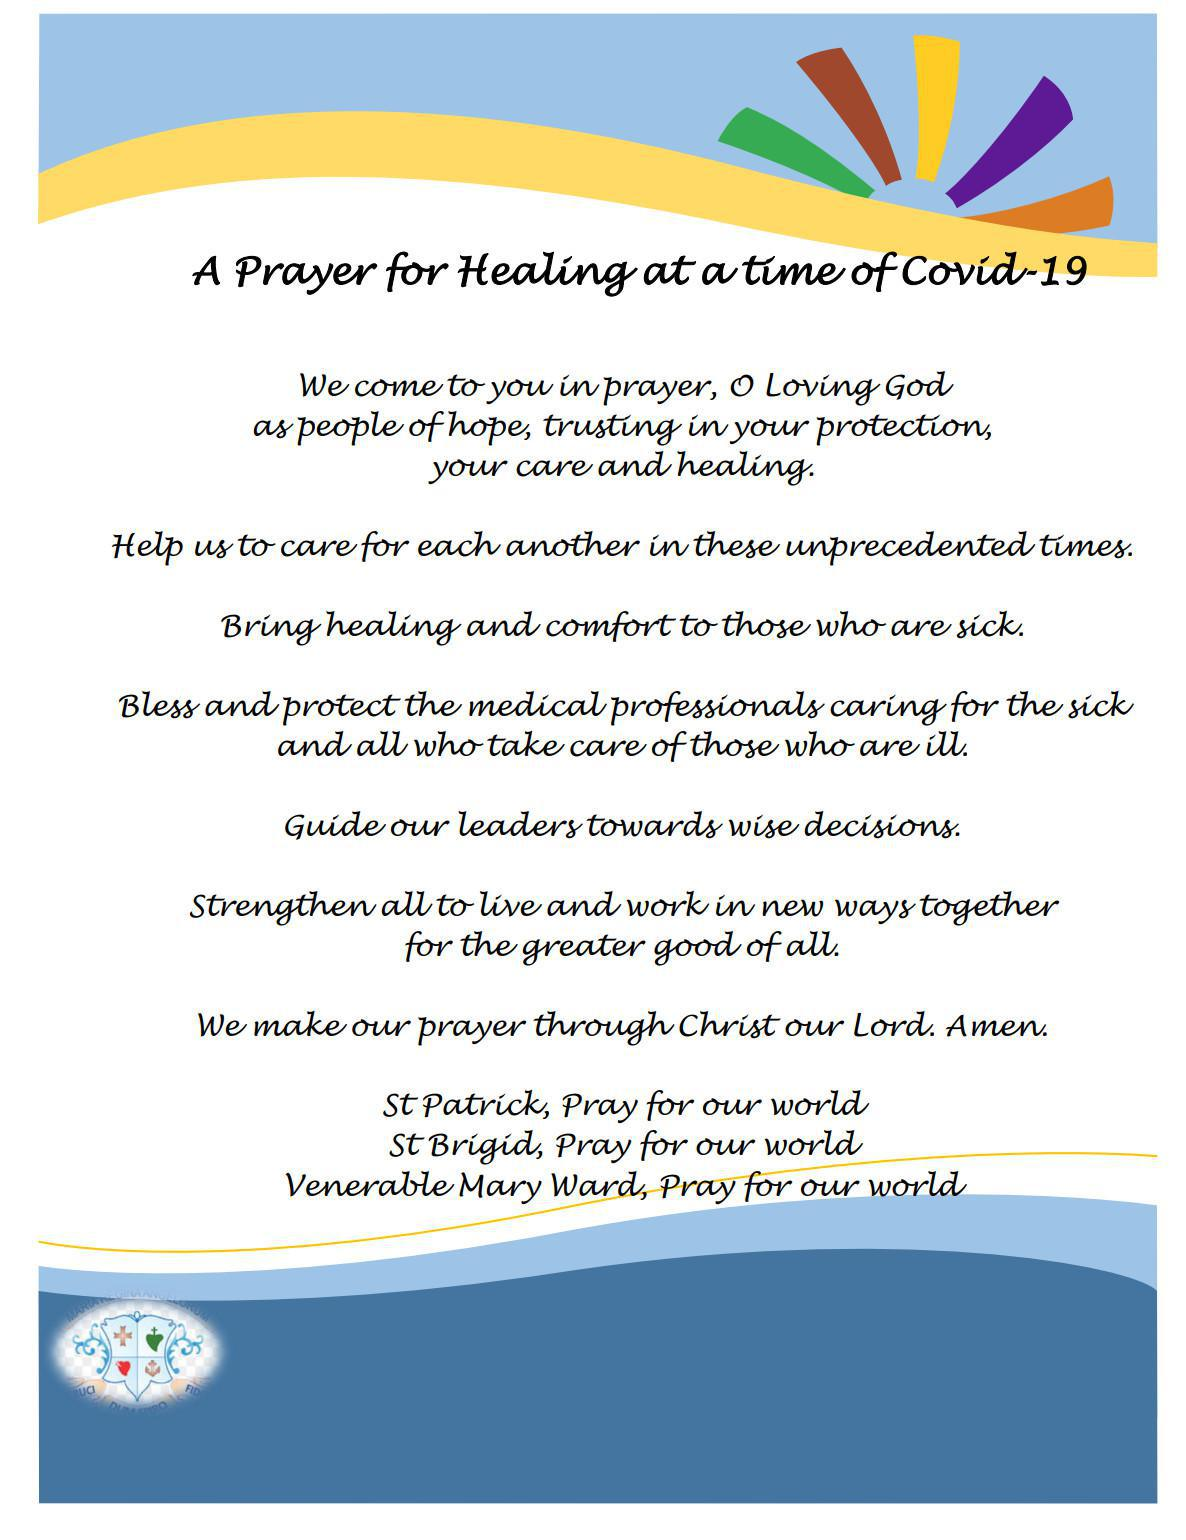 A prayer for Healing at a time of Covid-19